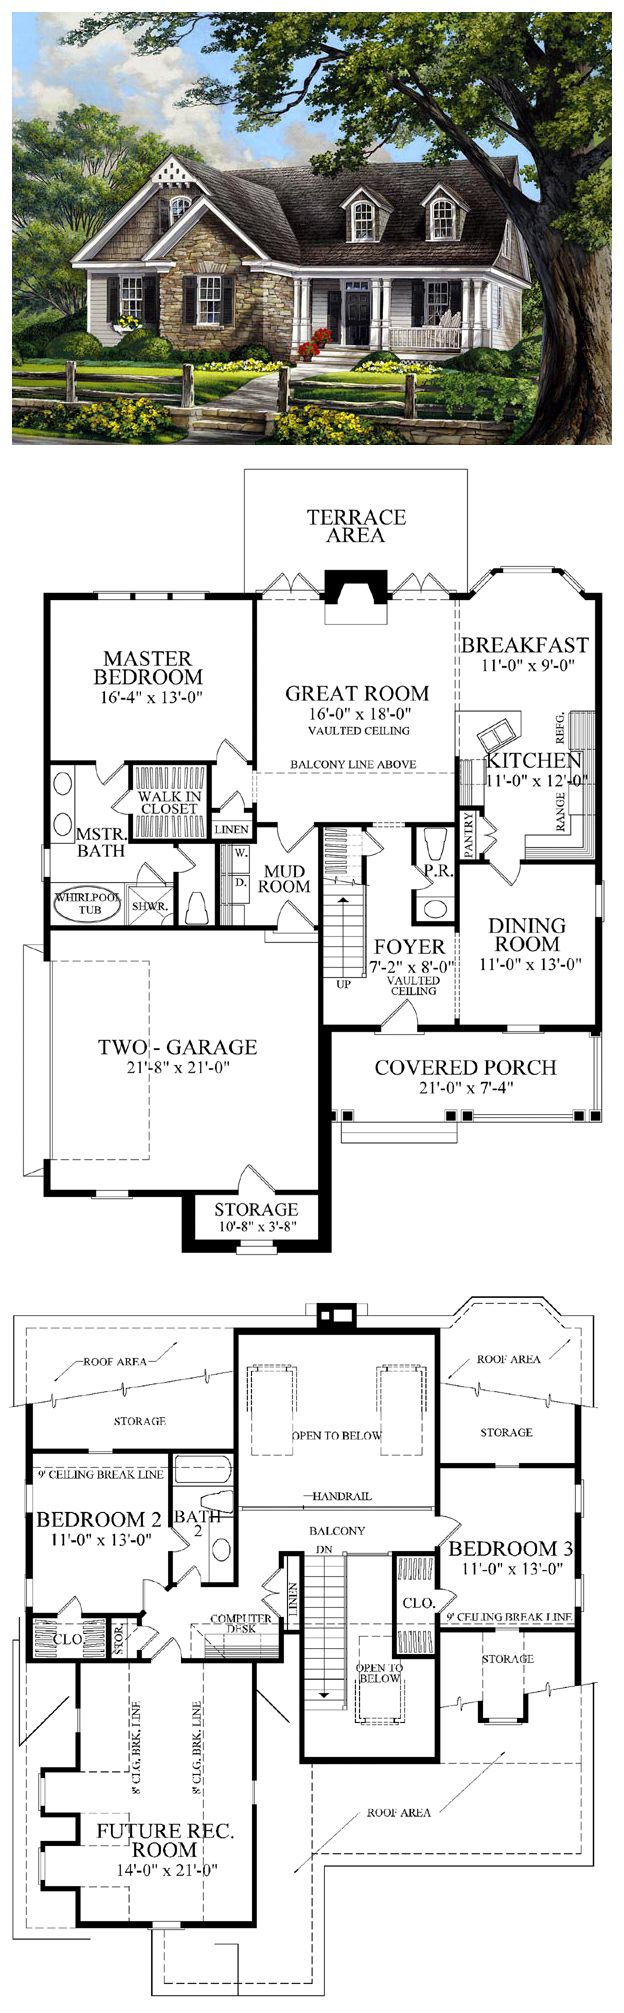 French Country House Plan 86109 has 2020 square feet of living space, 3 bedrooms and 2.5 bathrooms. The foyer opens to the formal dining room which has a service door to the kitchen. Enjoy a bay window in the breakfast room and french doors opening to the terrace area at the back of the house. Upstairs, bedrooms 2 & 3 share a balcony with a view of the great room downstairs. Space is also available for a future rec room. #frenchcountry